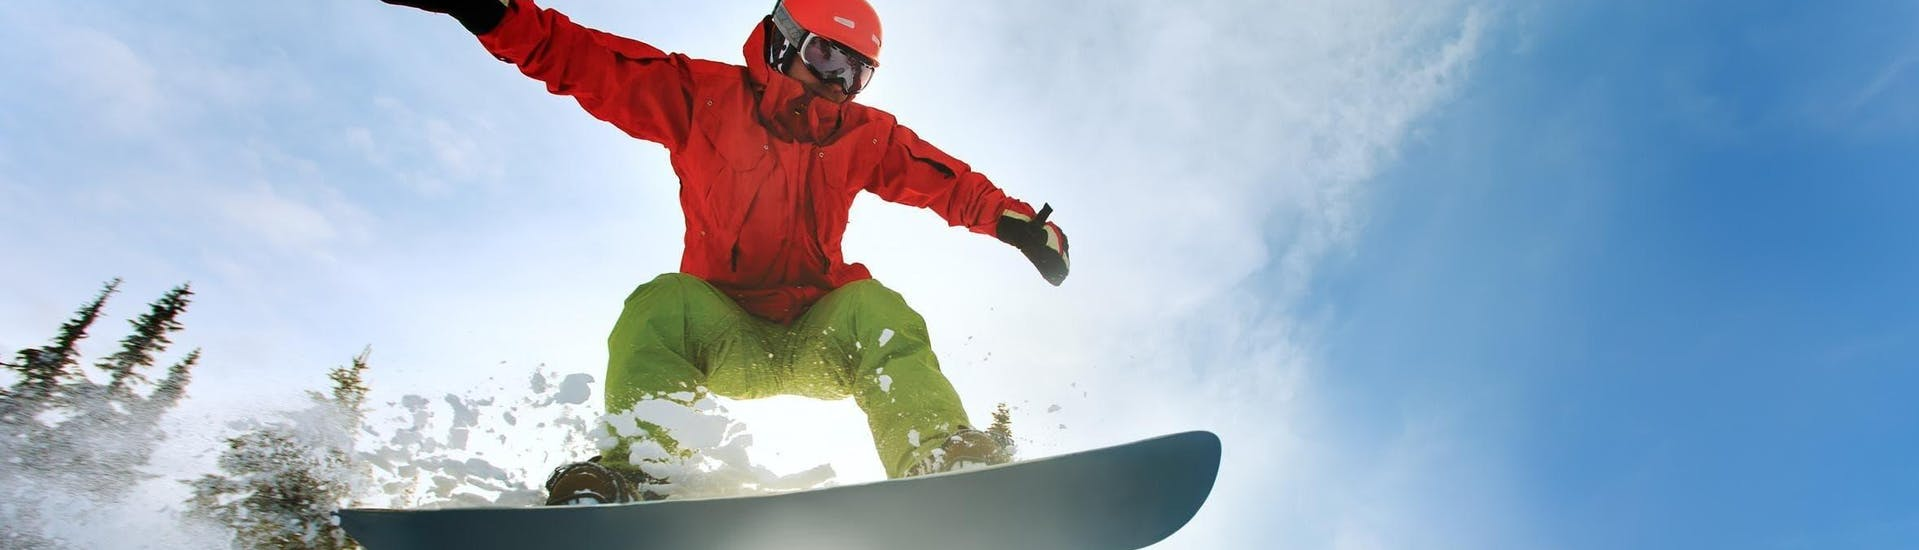 private-freestyle-snowboarding-lessons-adrenaline-verbier-hero